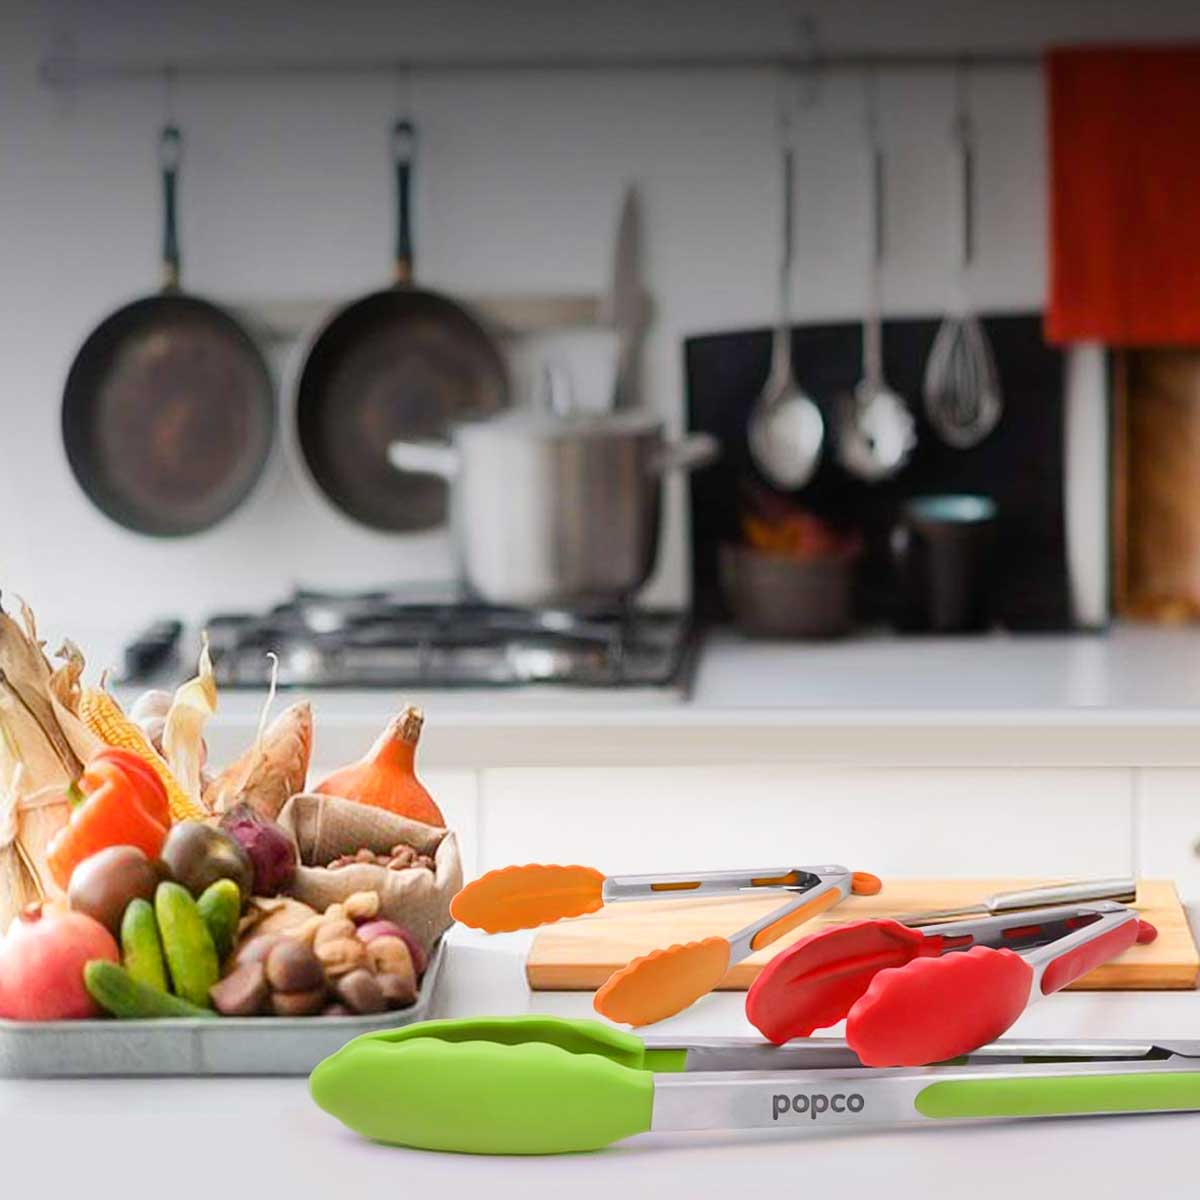 Popco Silicone Tipped Tongs on the counter red orange and green.